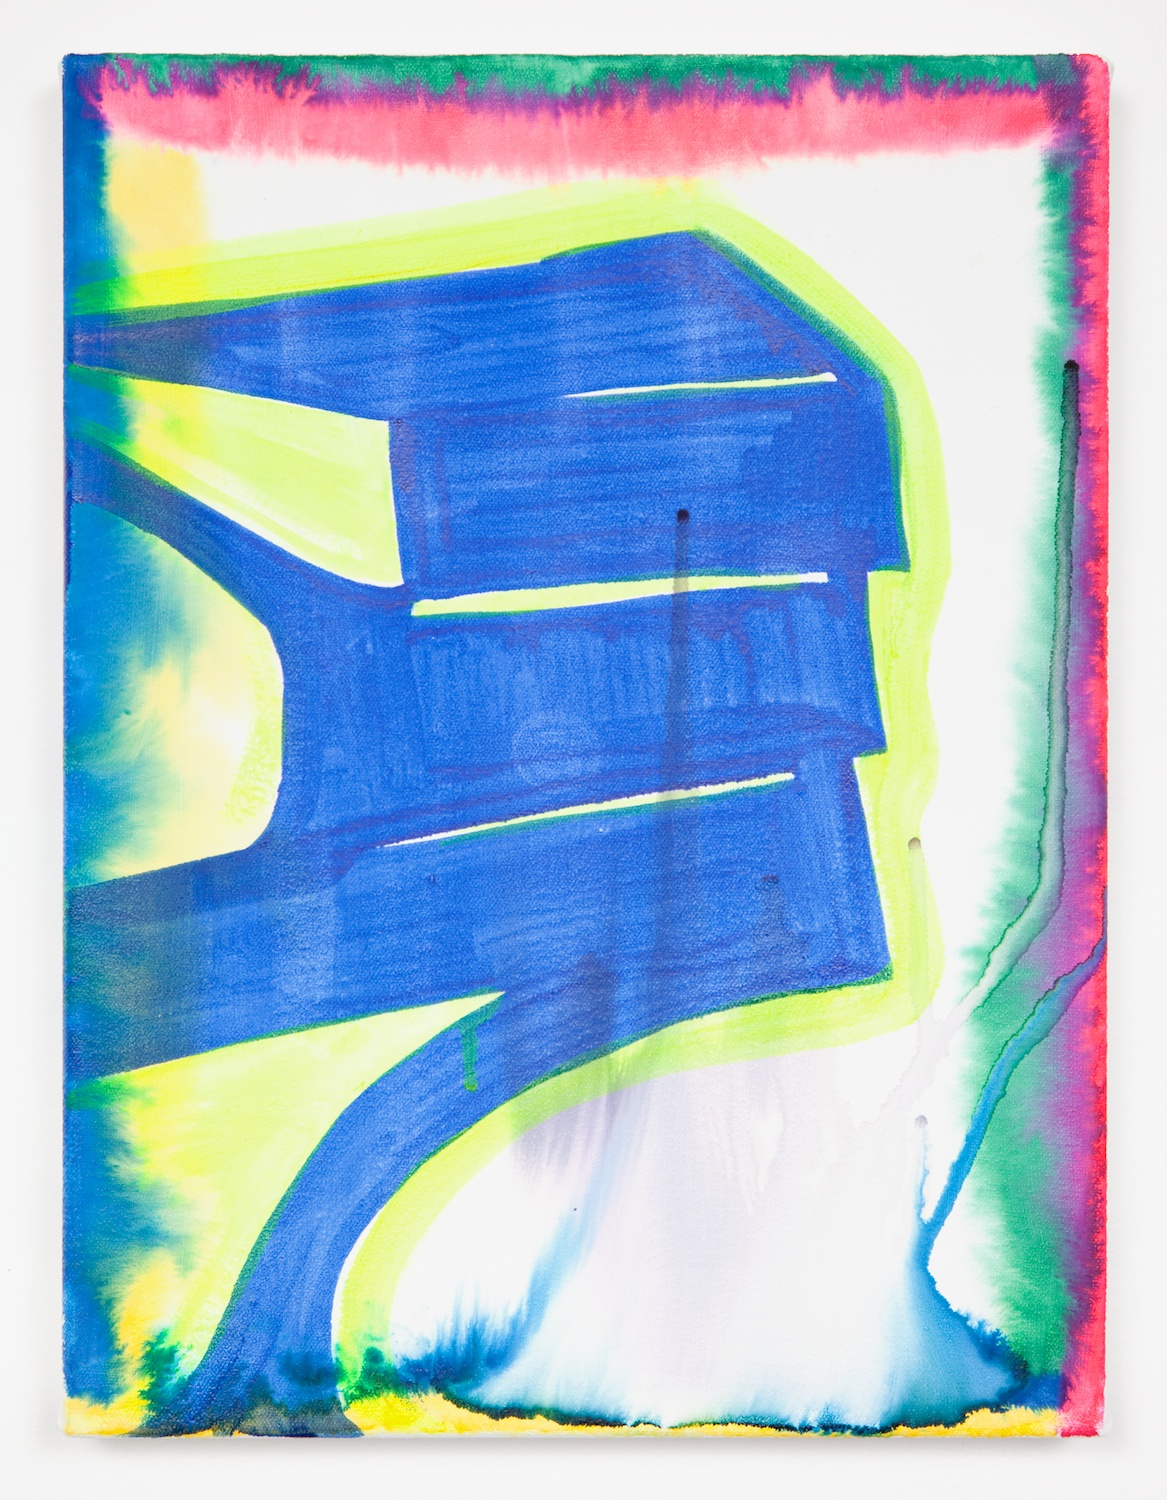 Joanne Greenbaum  Untitled  2011 Oil, acrylic and mixed media on linen 16h x 12w in JG025